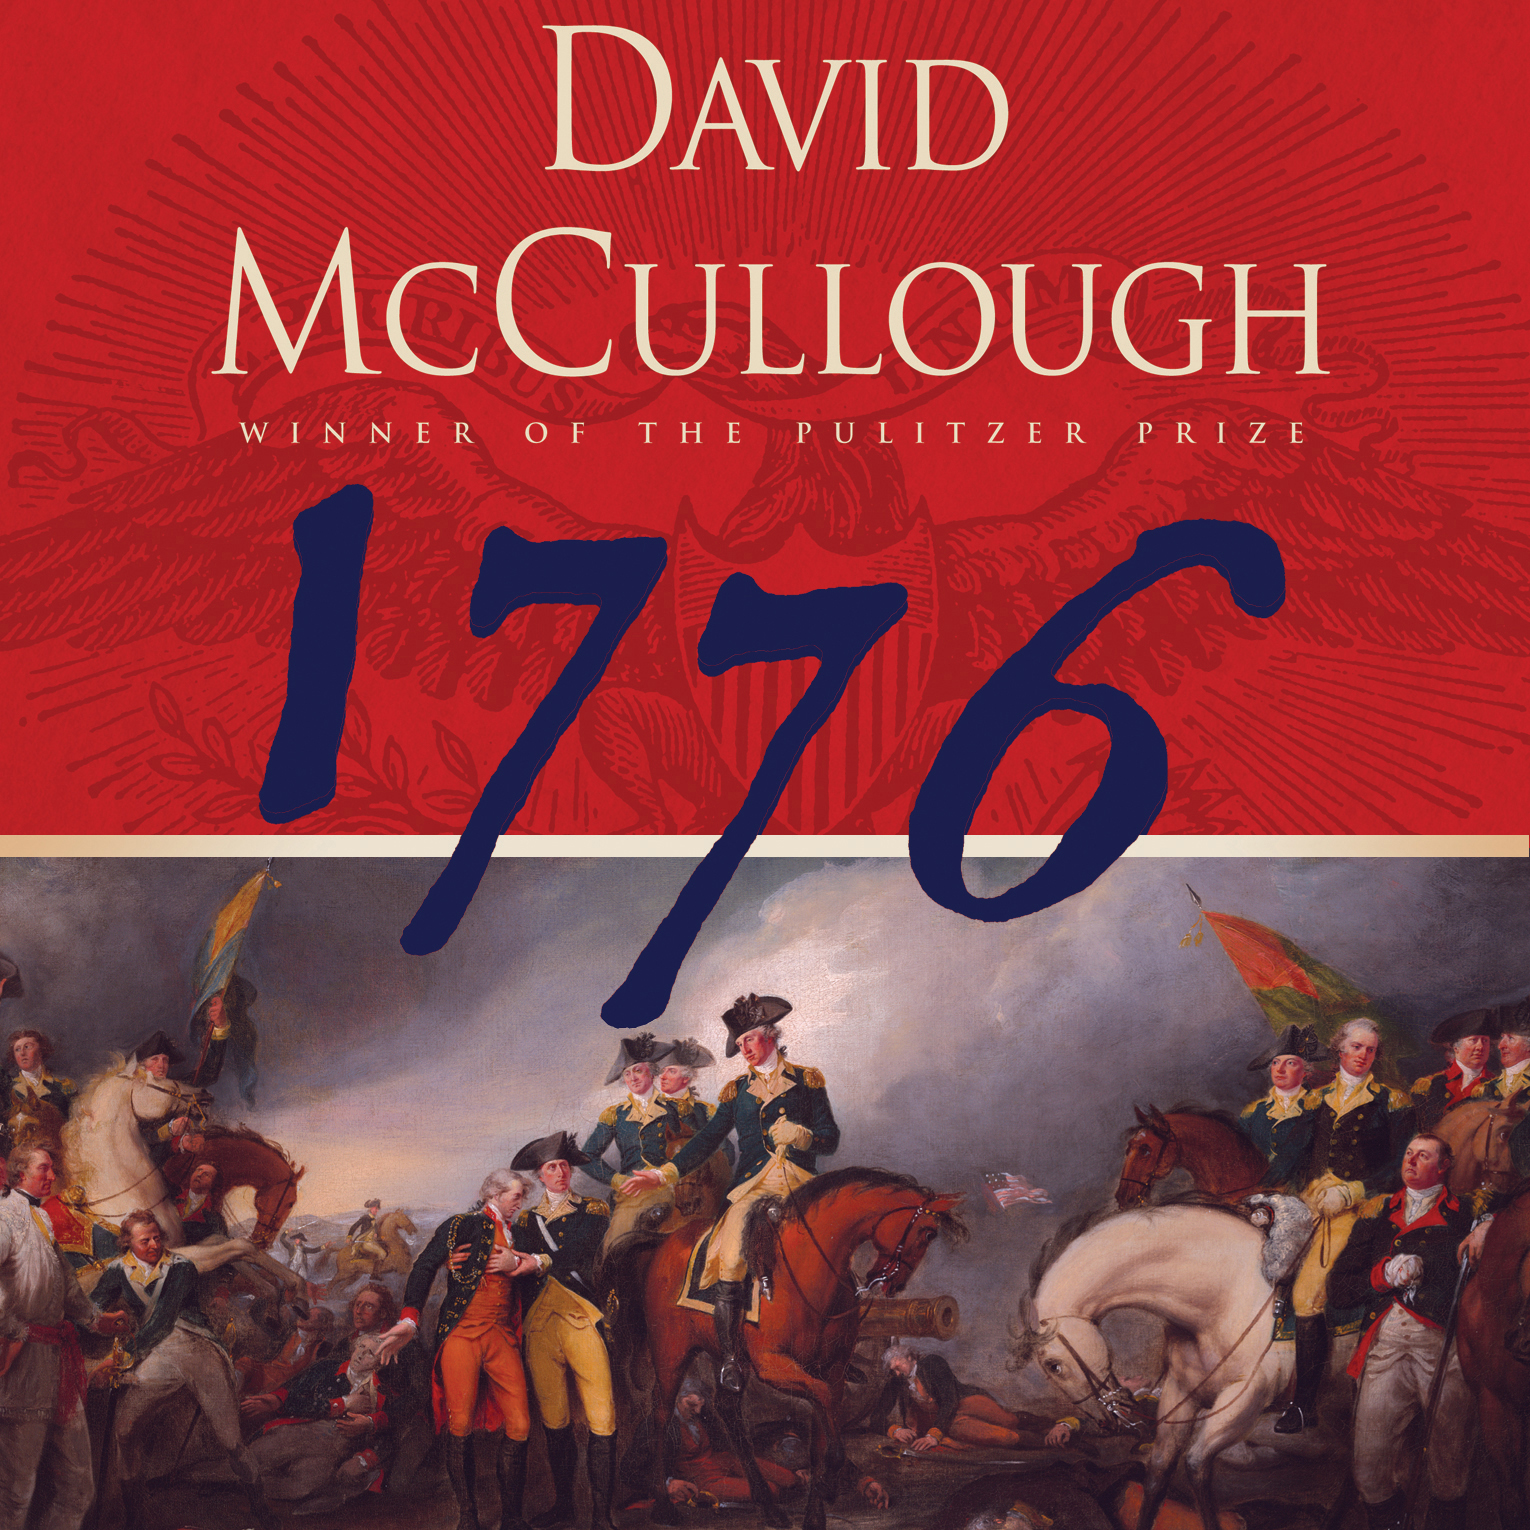 what is the thesis of the book 1776